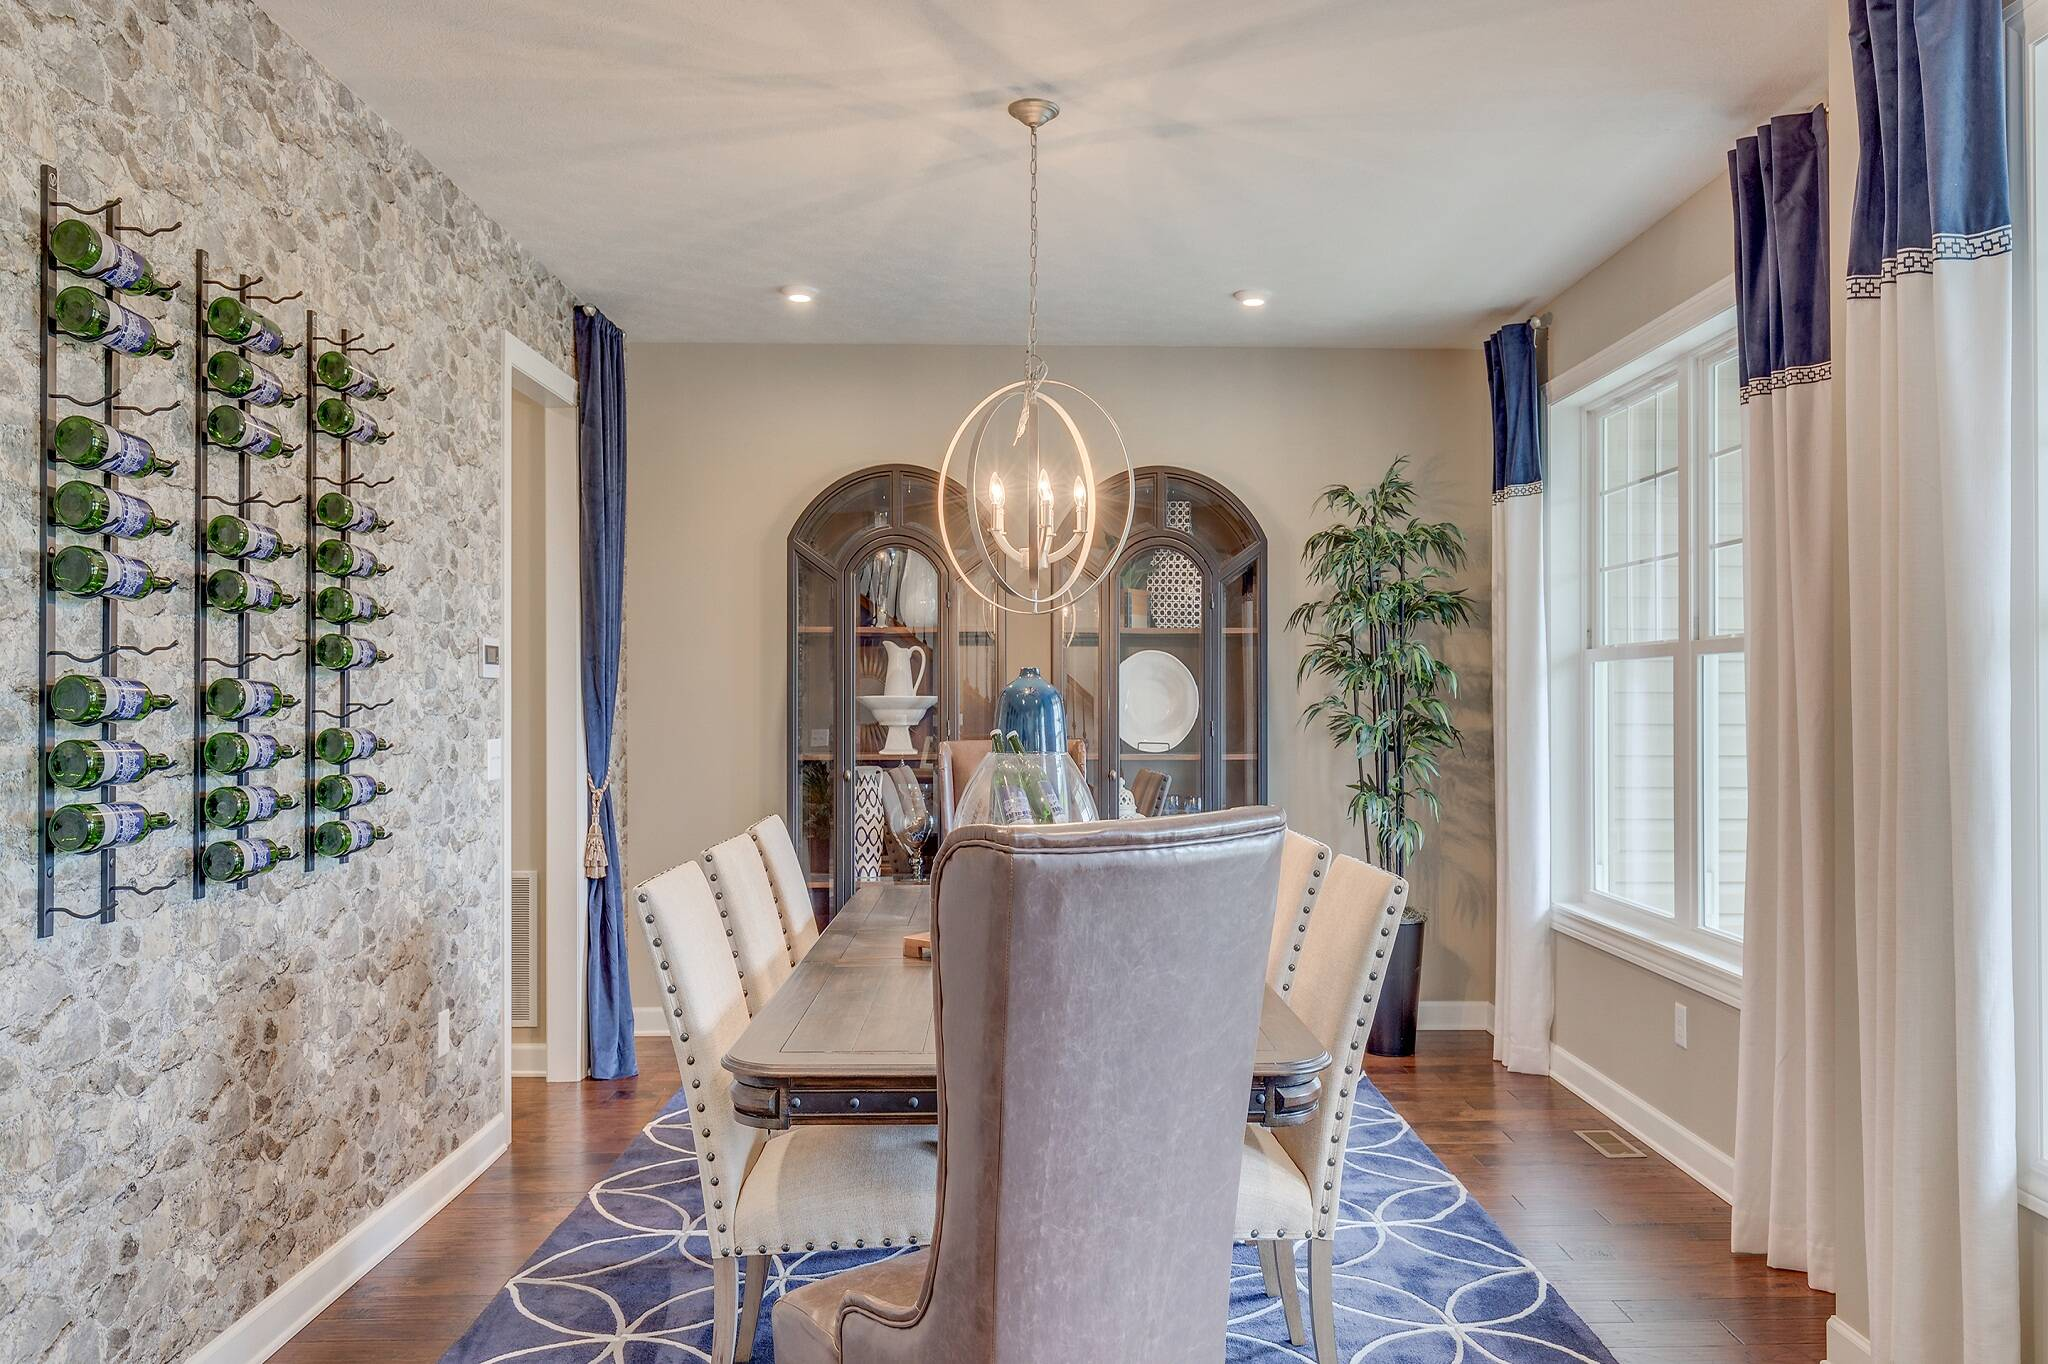 2048x1364khov_washington_thorndale_dining-room